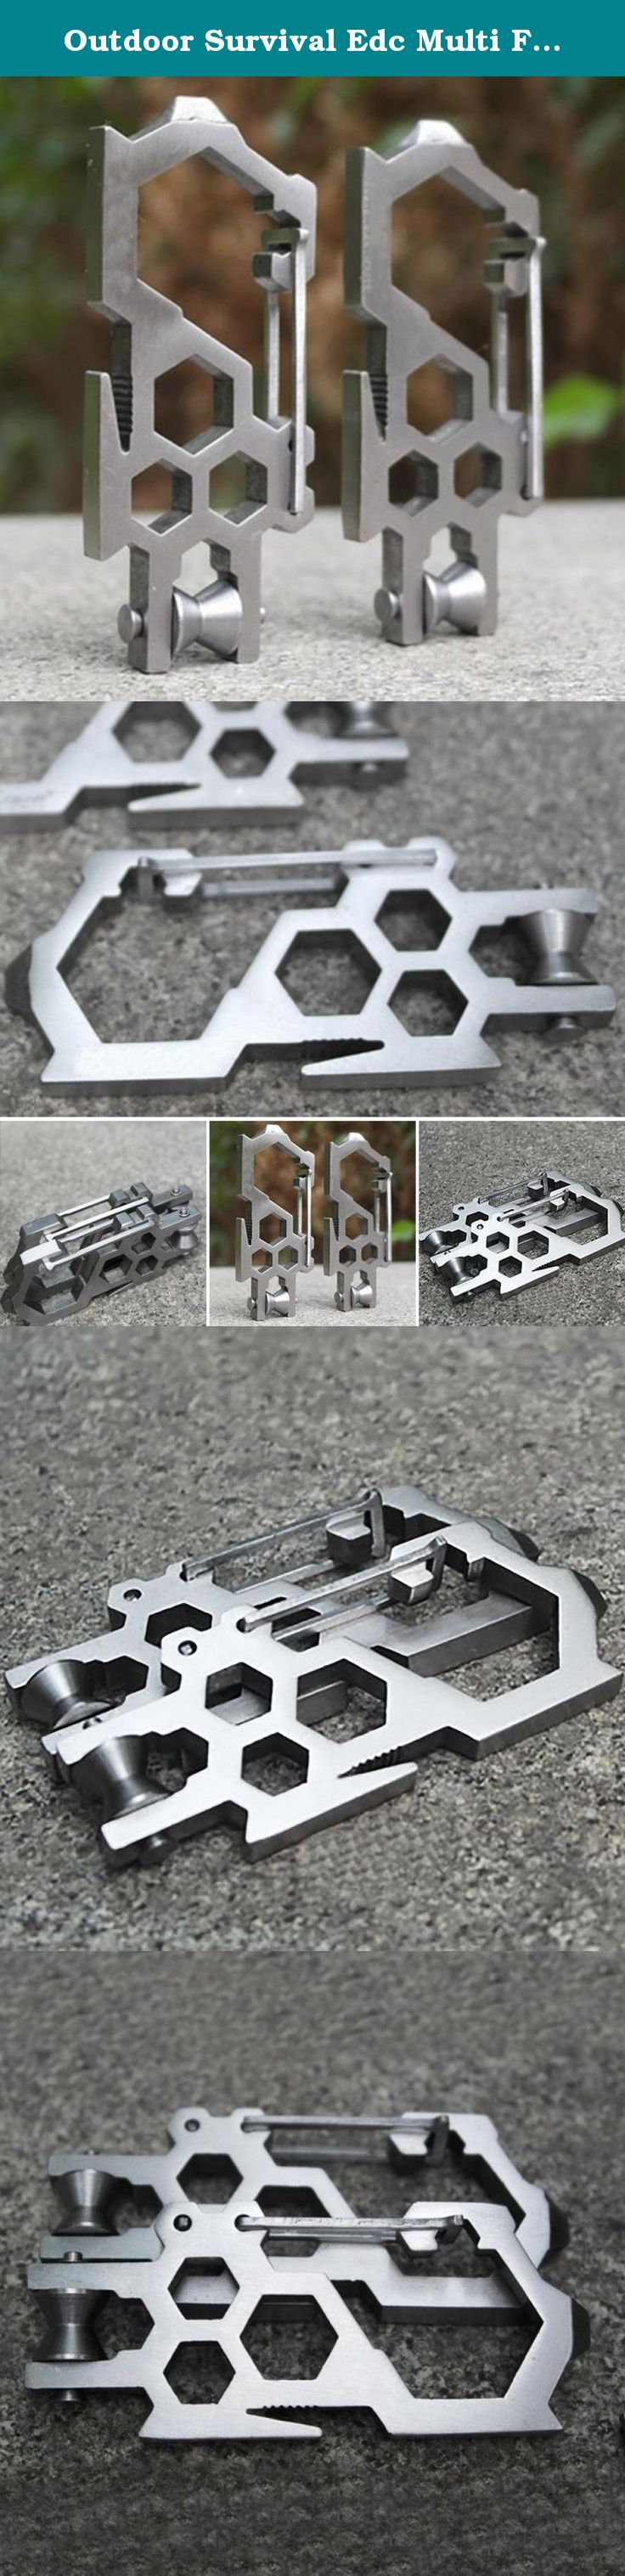 Outdoor Survival Edc Multi Function Tool Rope Hang Buckle Strengthen Version Pulley System To Hang Buckle With Pulley. is_customized:yes model number:edc strengthen version rope hang buckle unit type:piece package weight:0.050kg (0.11lb.) package size:15cm x 10cm x 3cm (5.91in x 3.94in x 1.18in) .